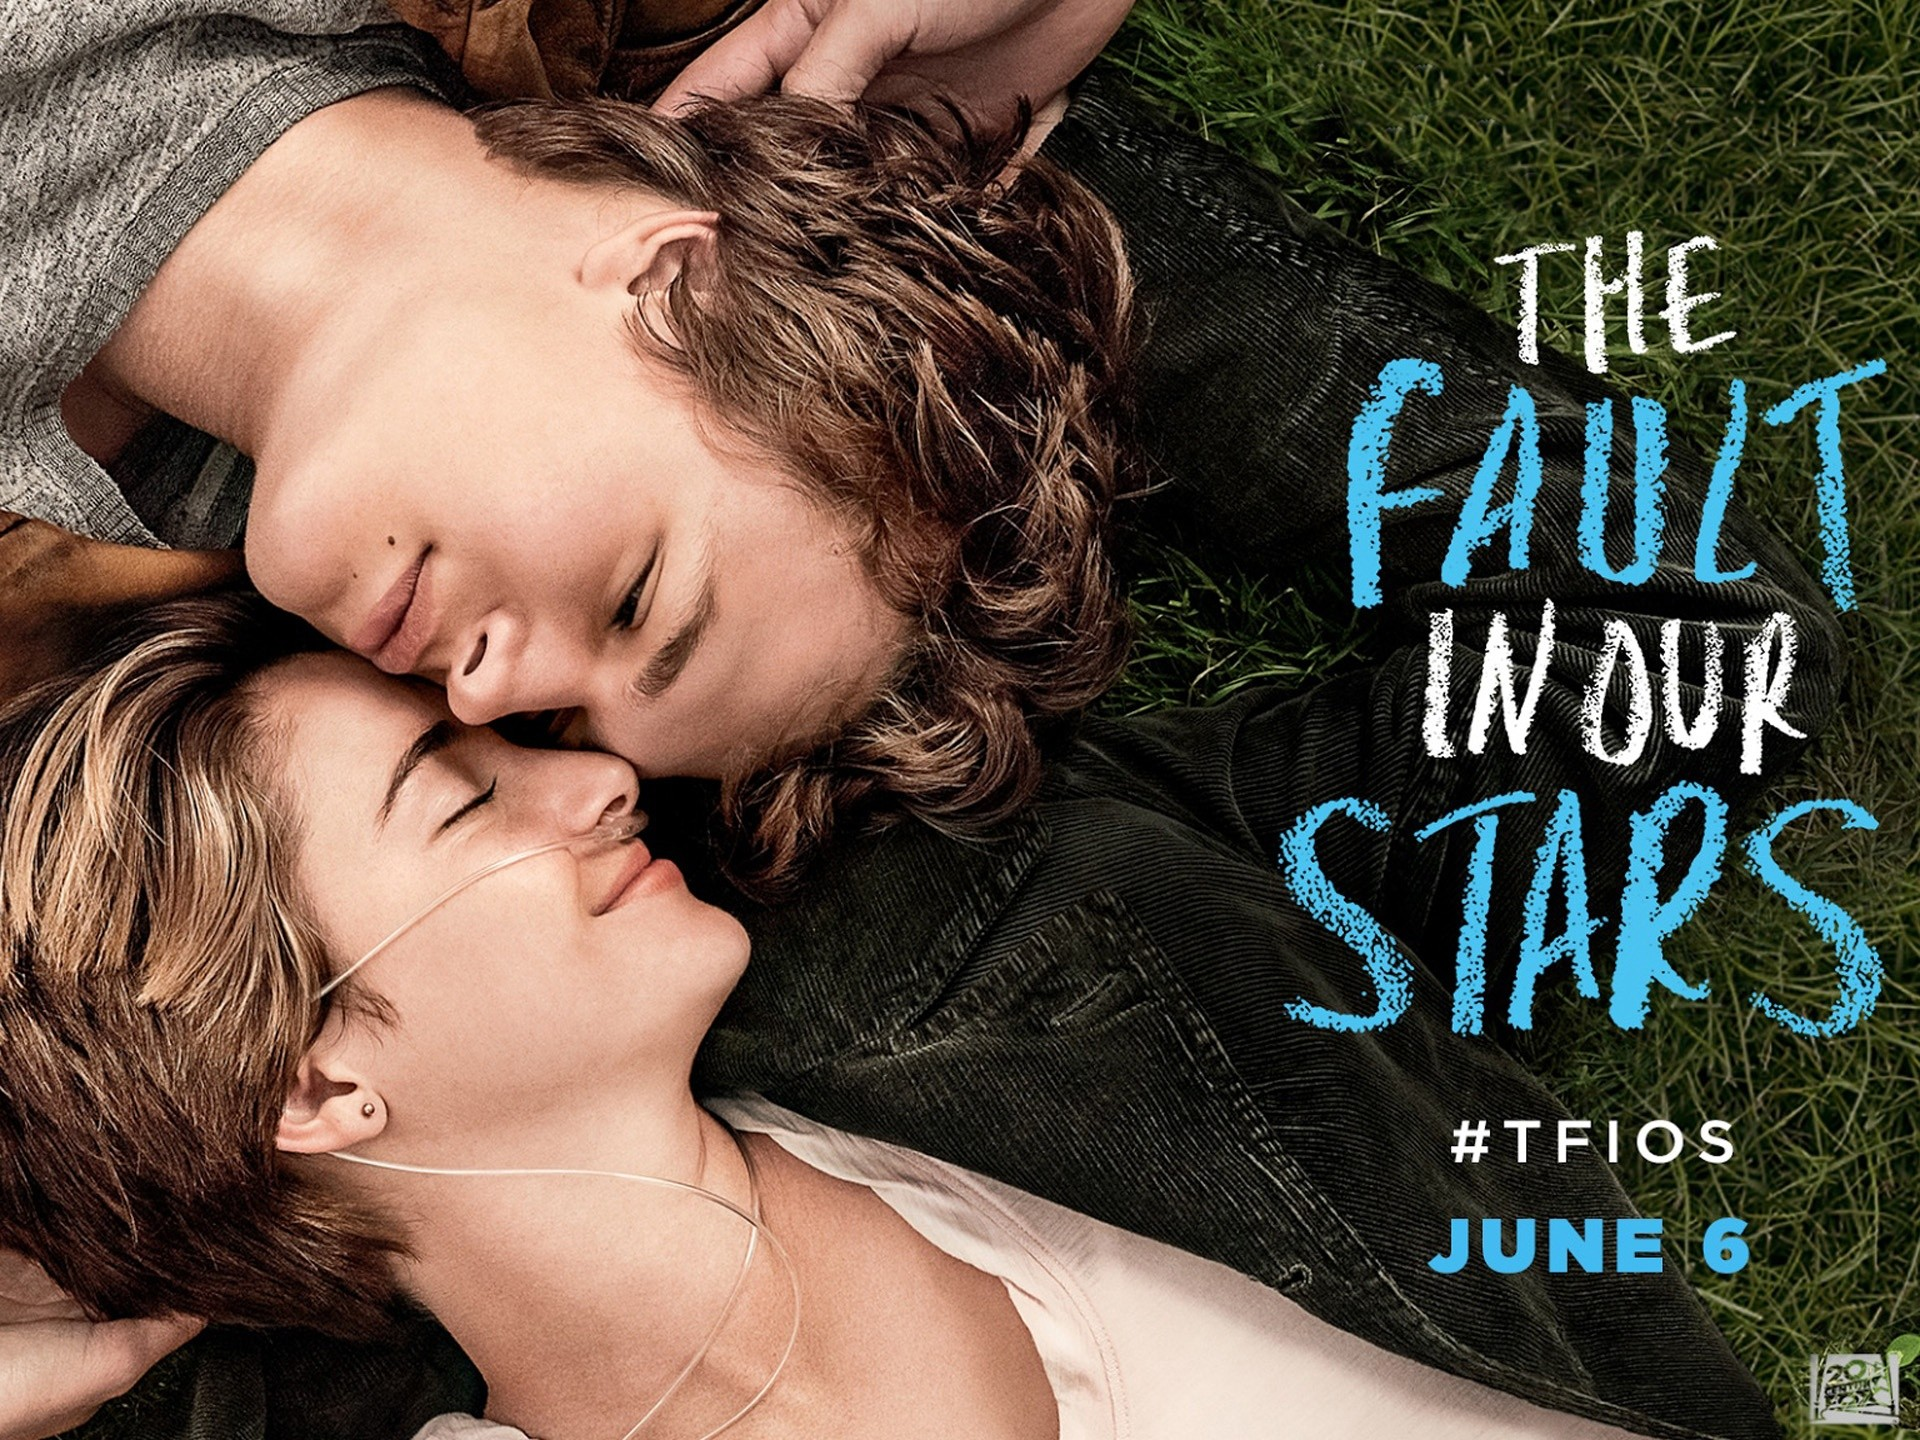 best love movie in the world-the world the fault in our stars